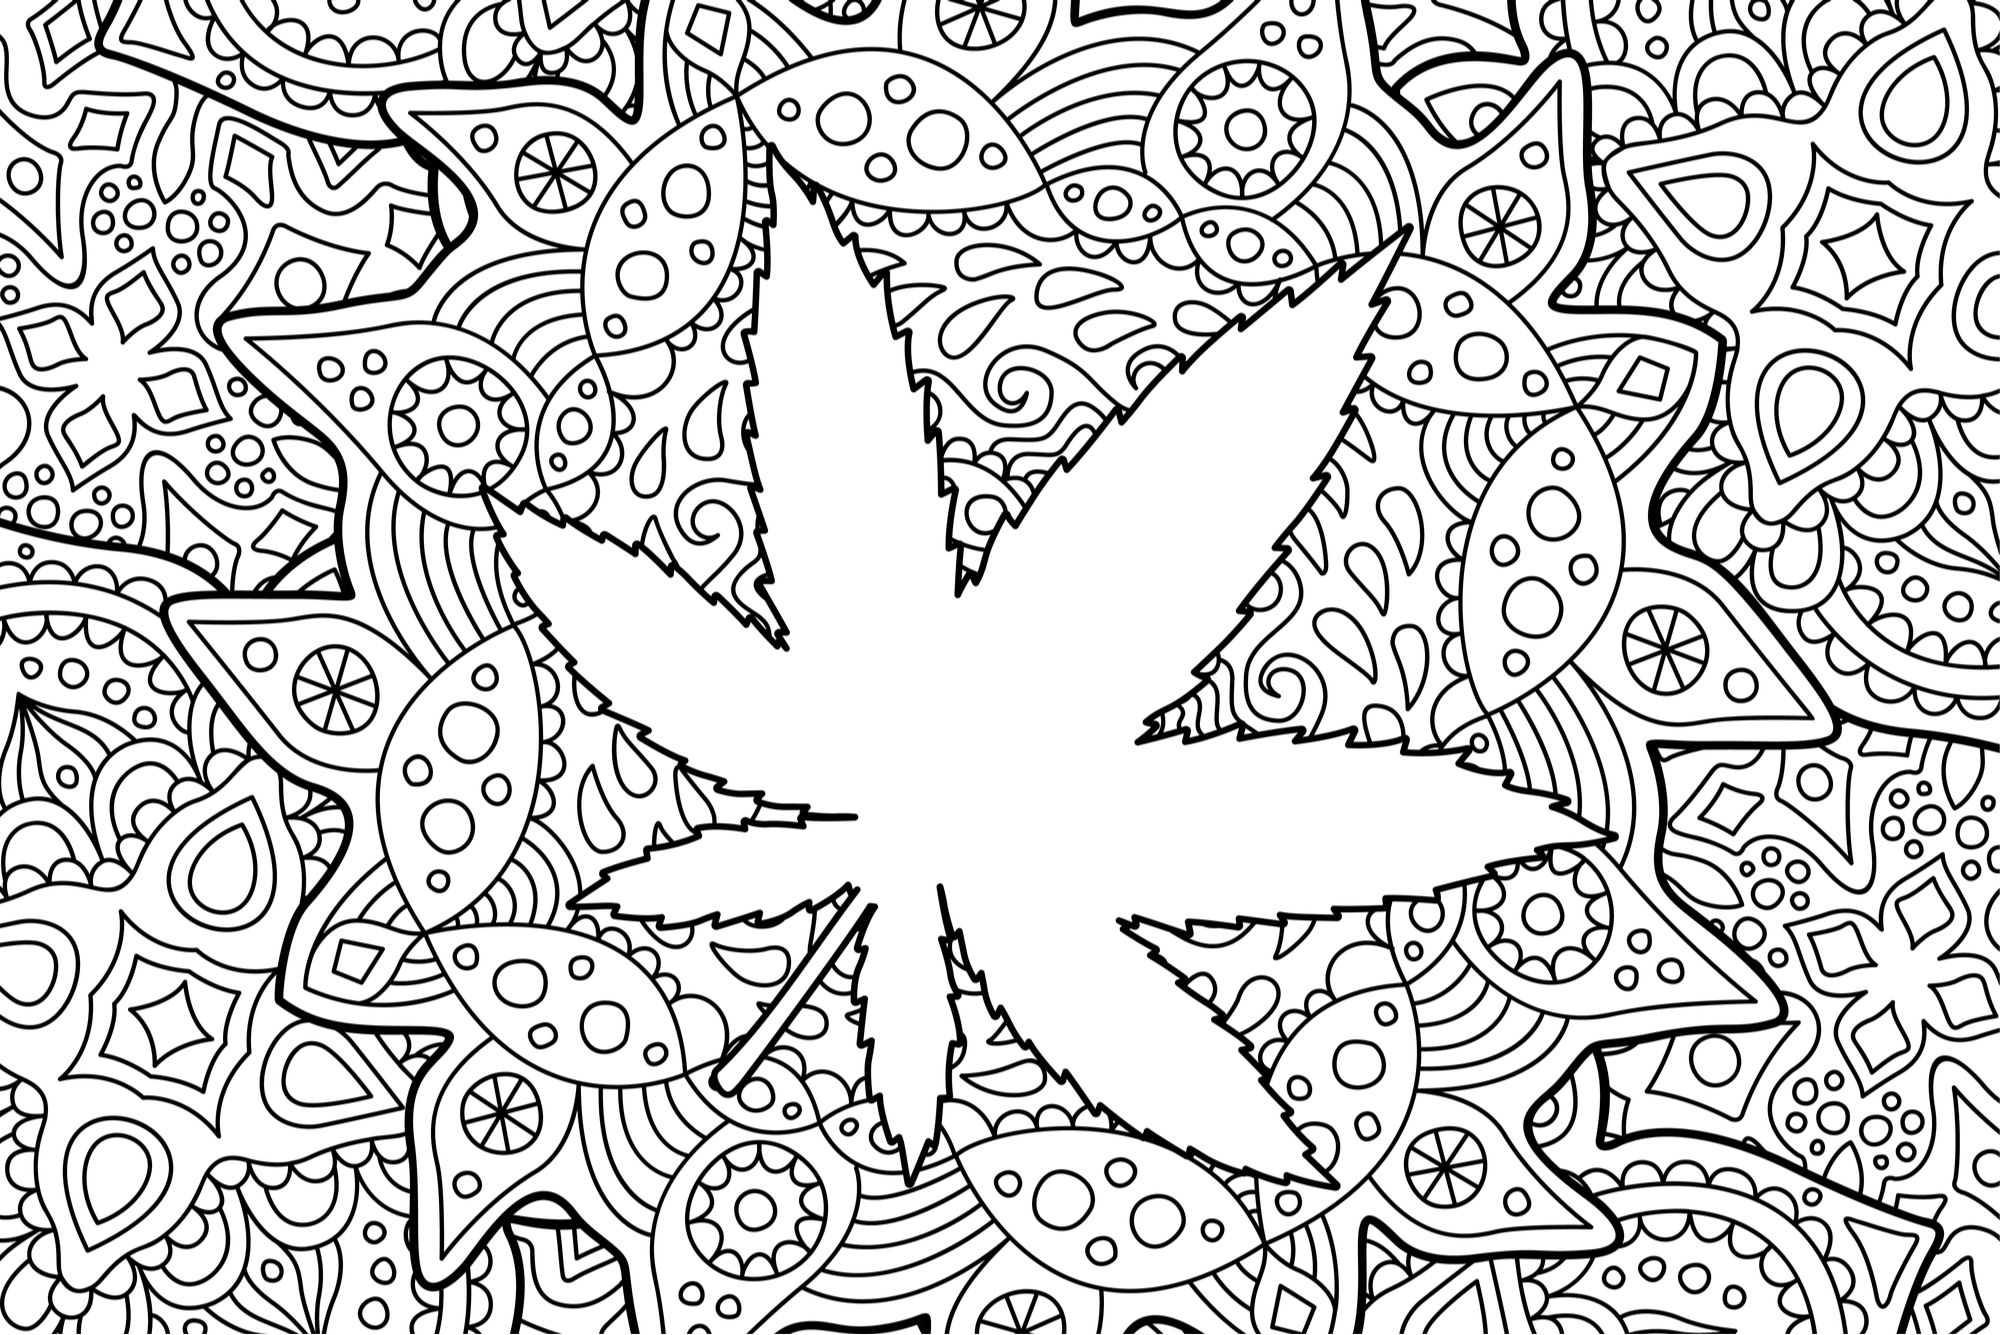 - Top 5 Cannabis Coloring Books For The Artistic Stoner Leafbuyer